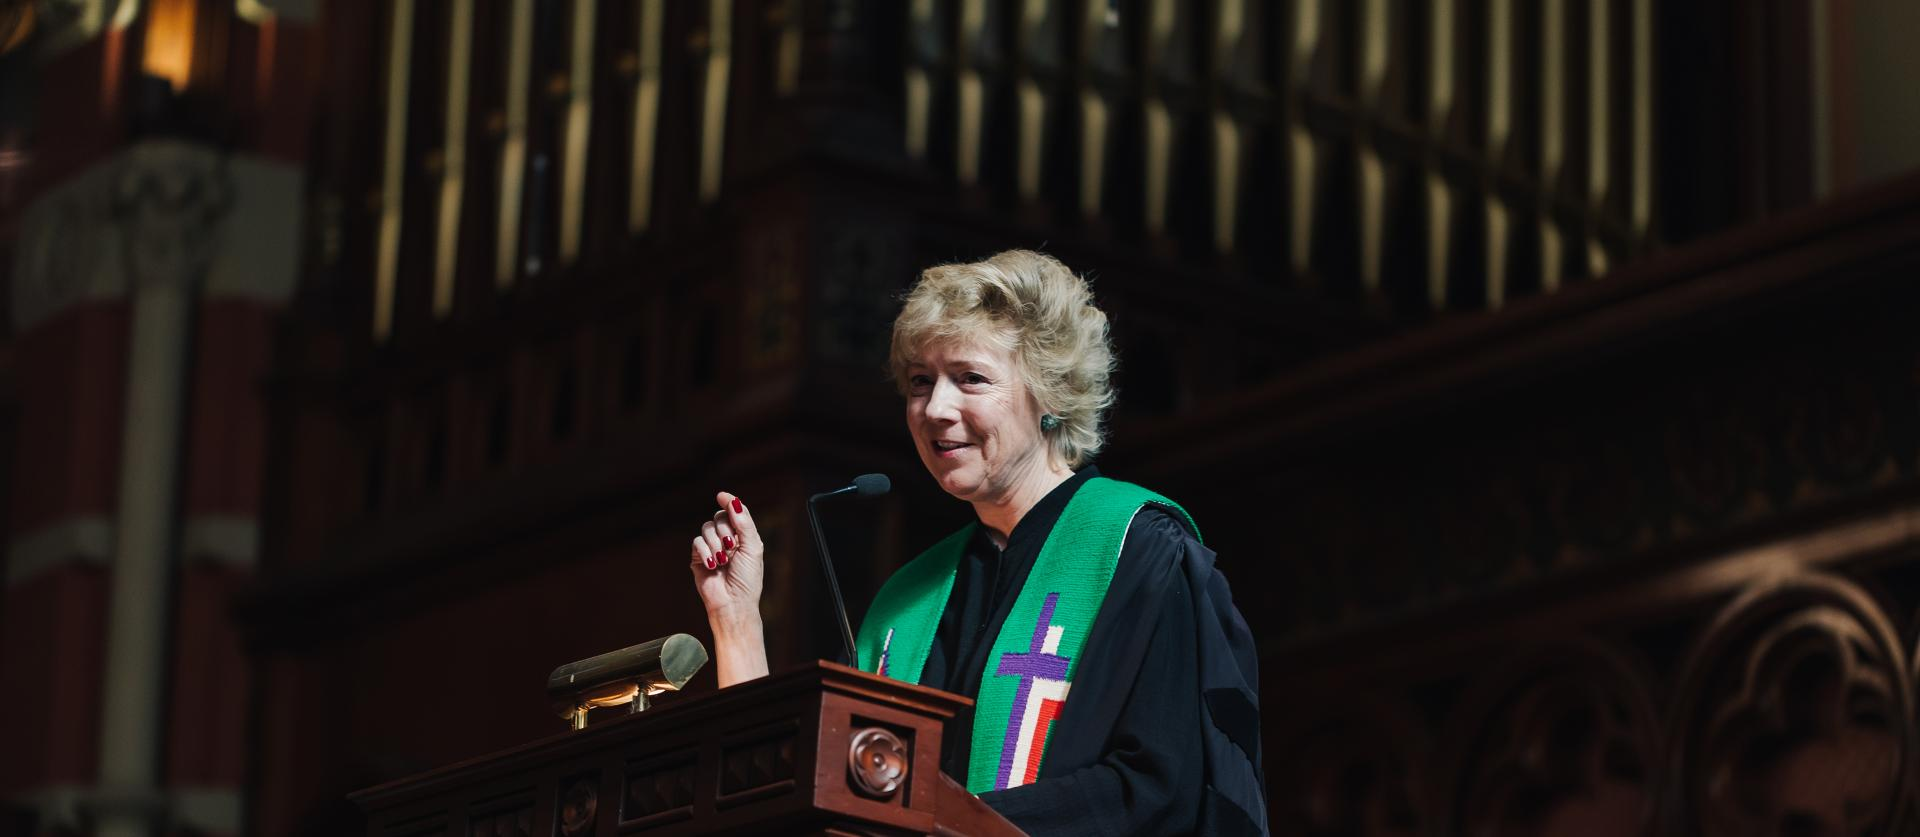 Rev. Nancy Taylor preaches from the pulpit in Old South's sanctuary